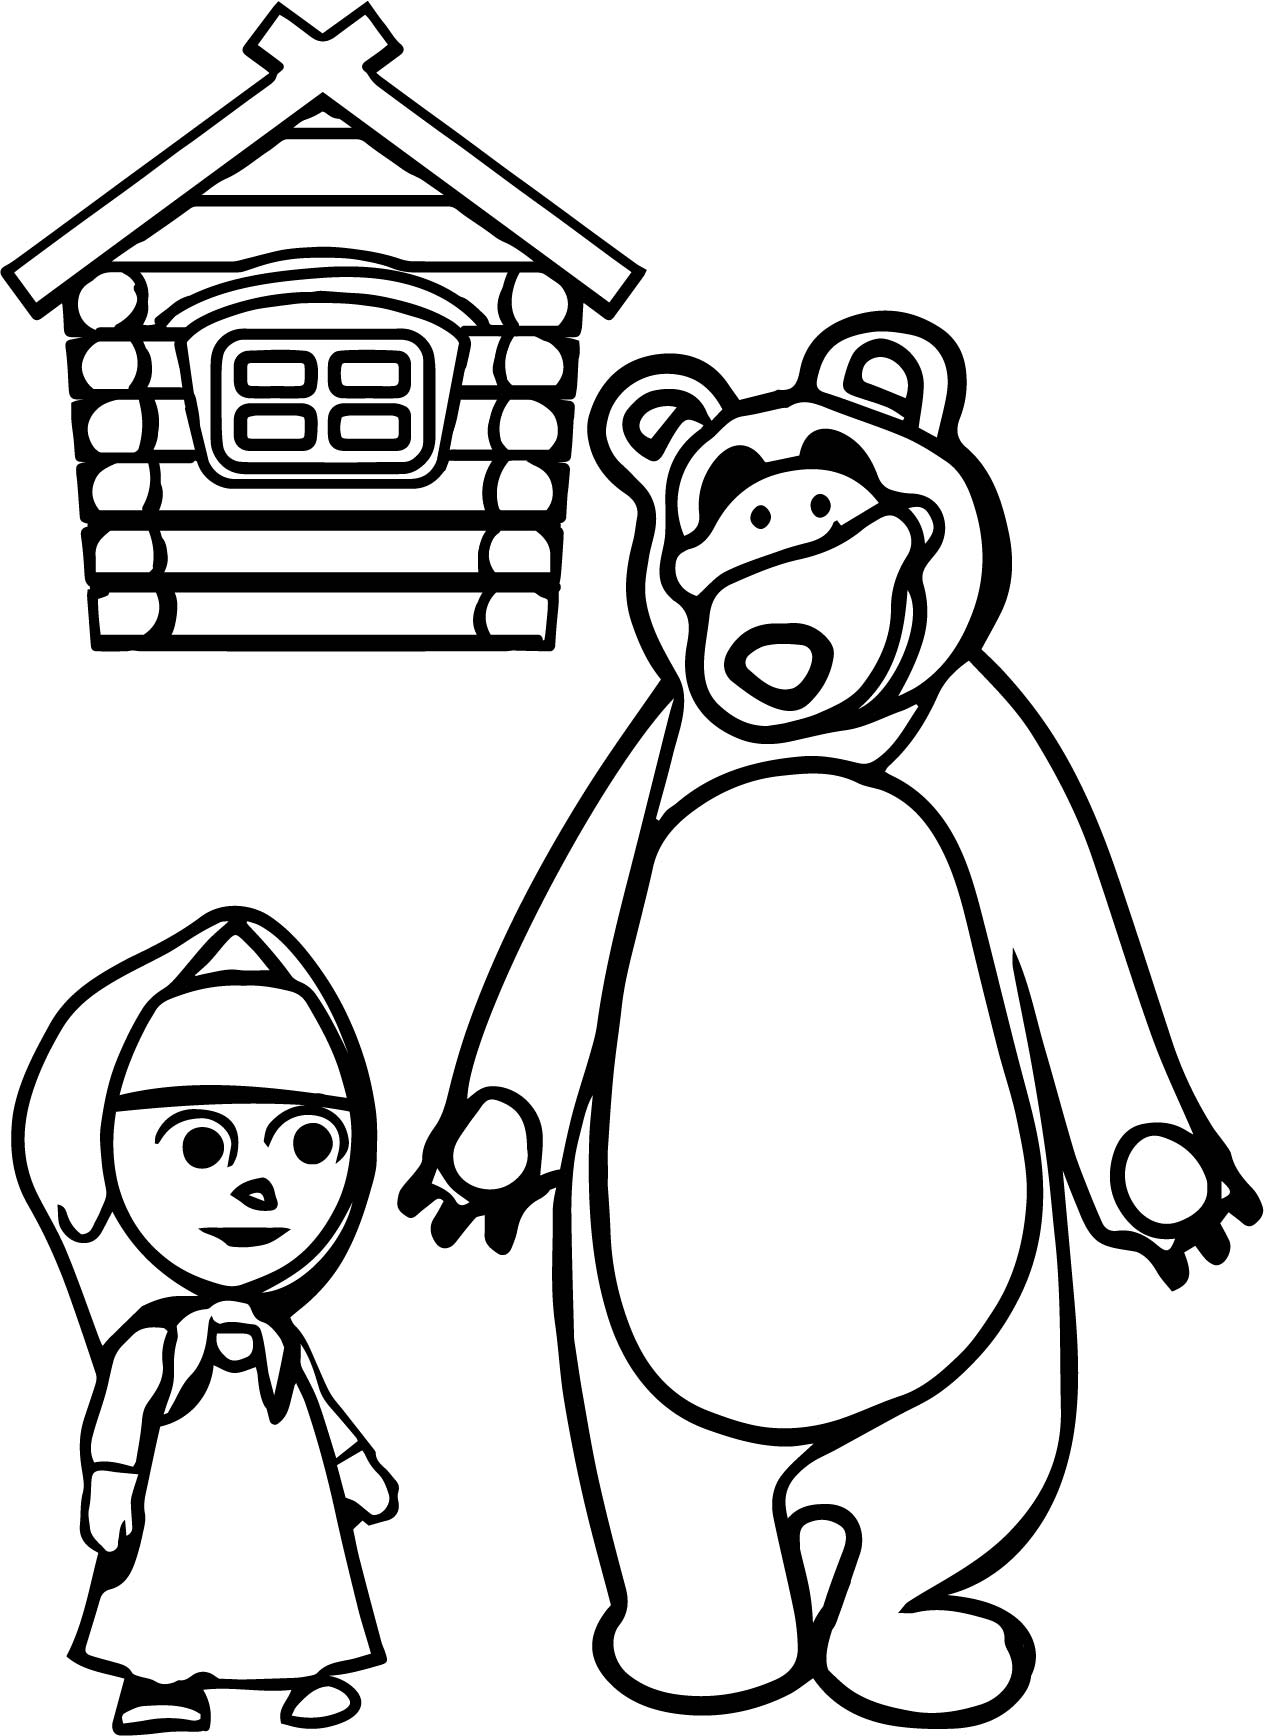 The Best Free Mawa Coloring Page Images Download From 3 Free